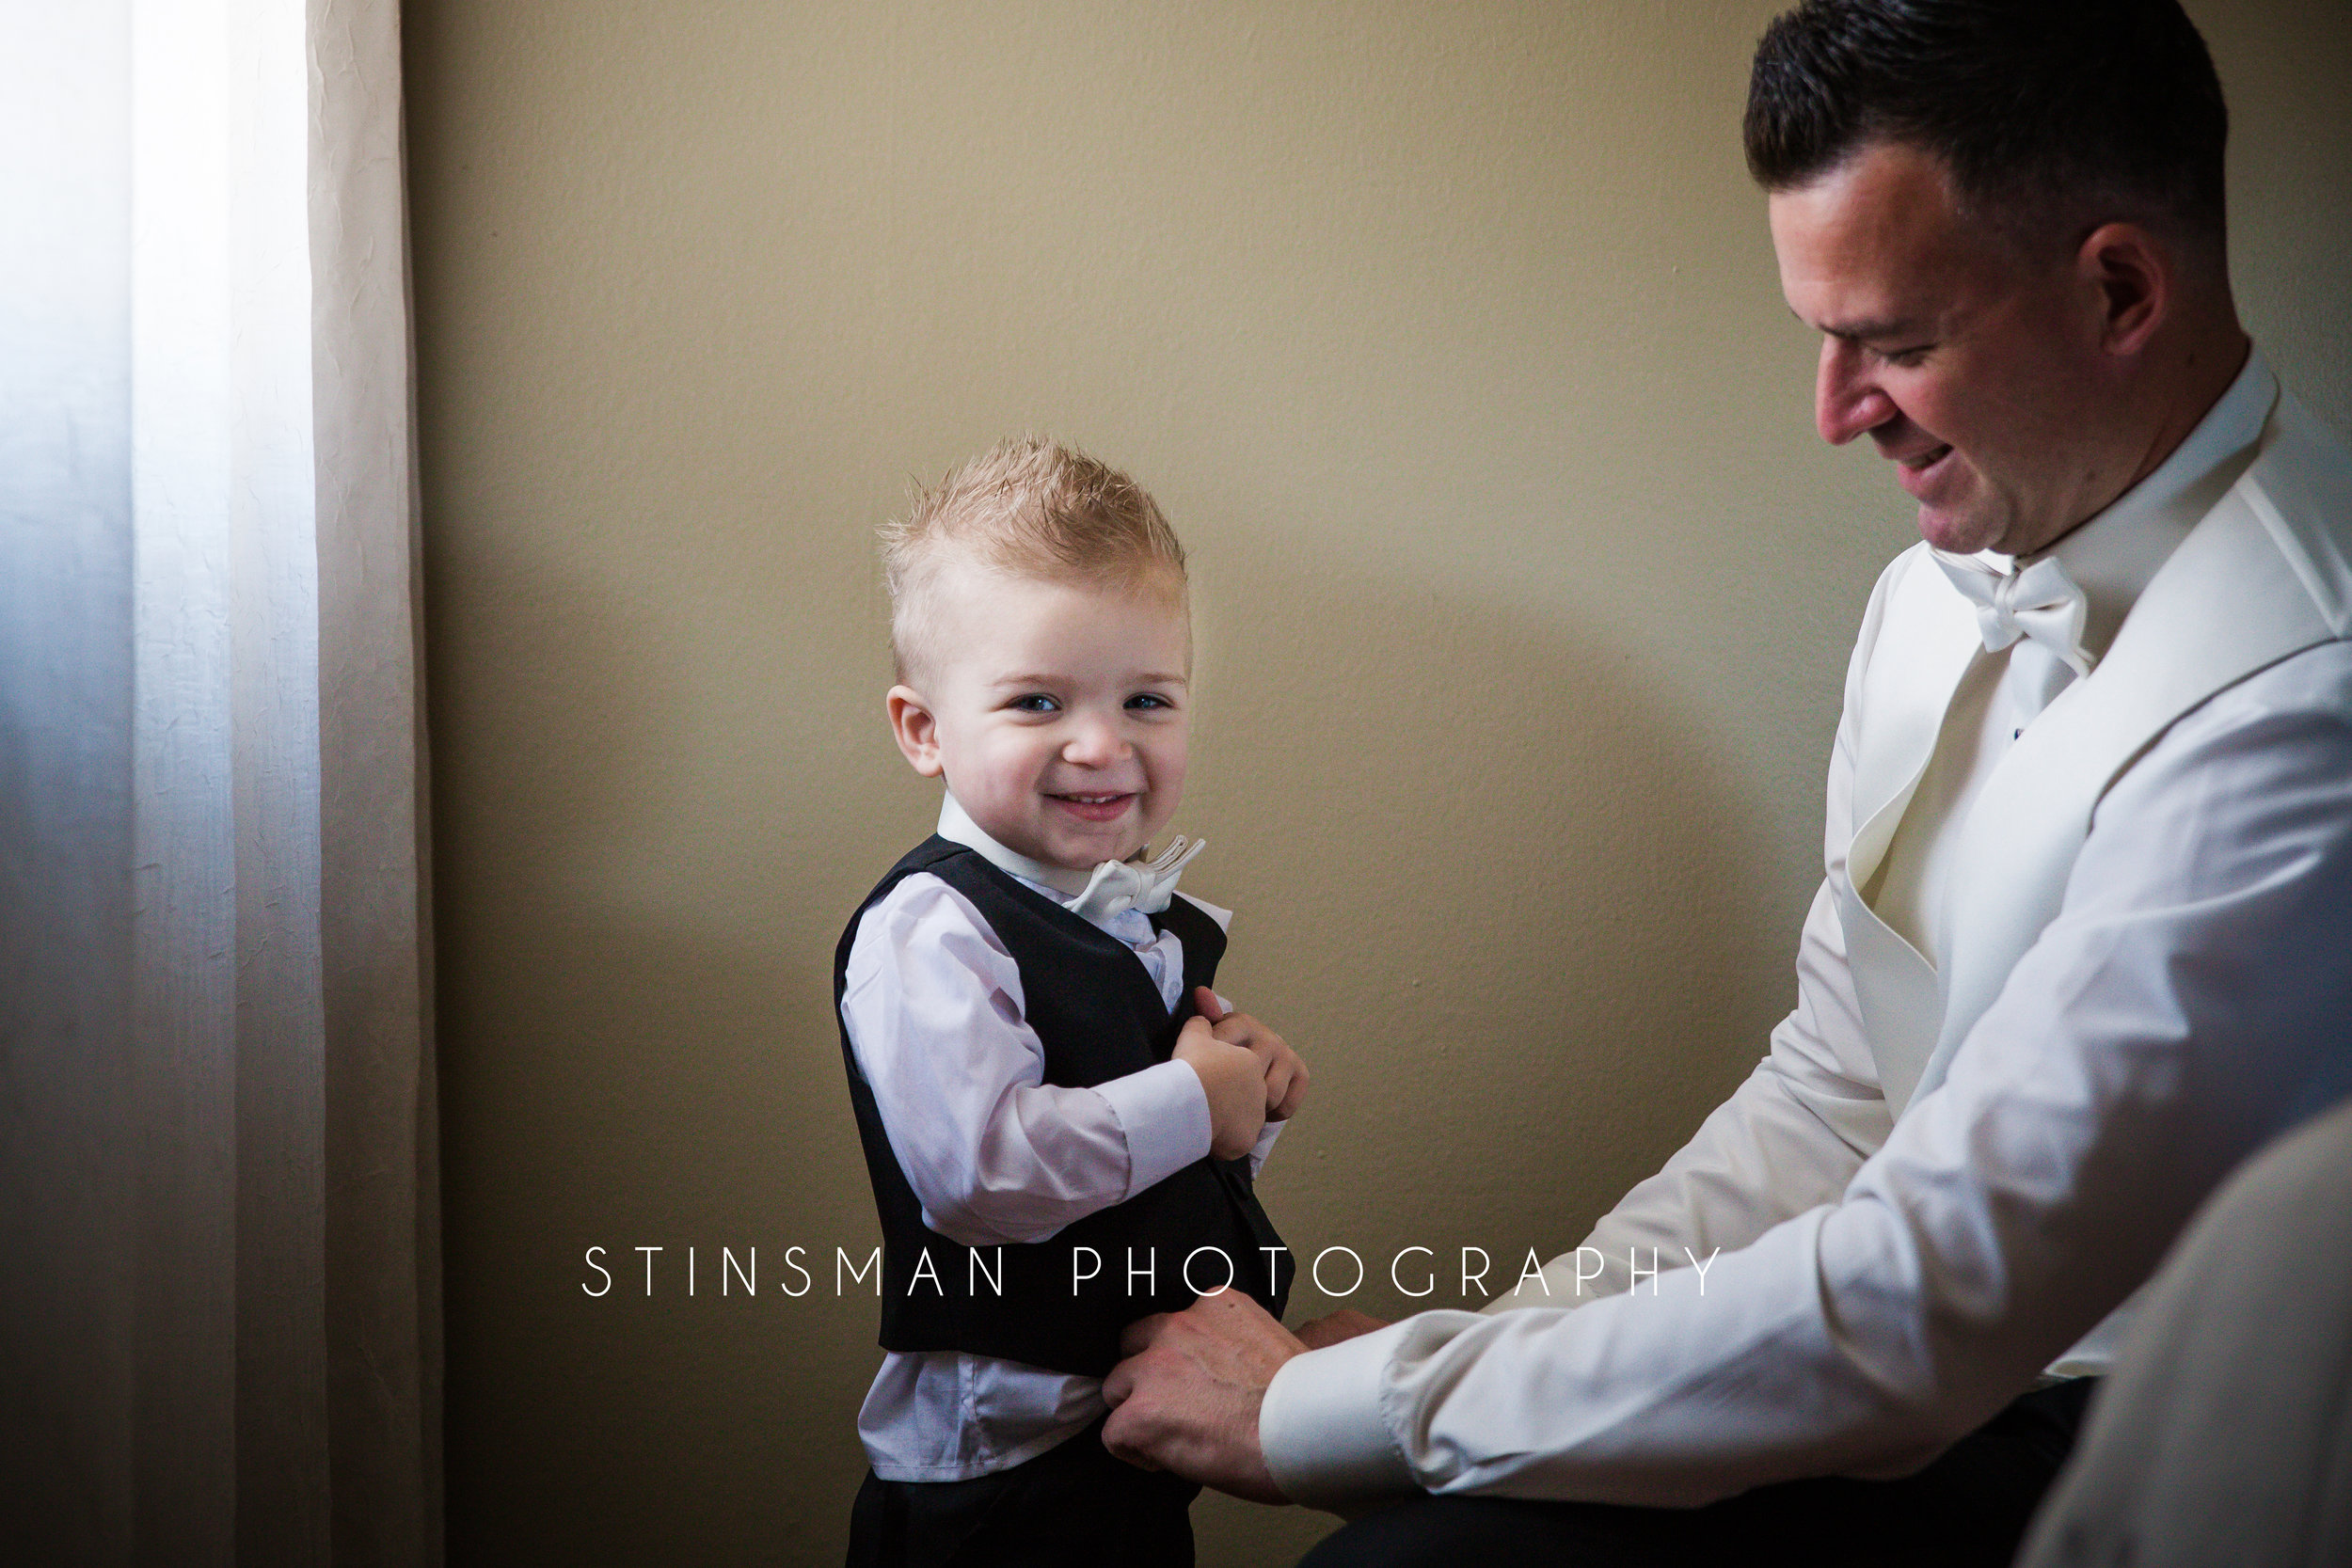 grooms son getting ready for wedding photos